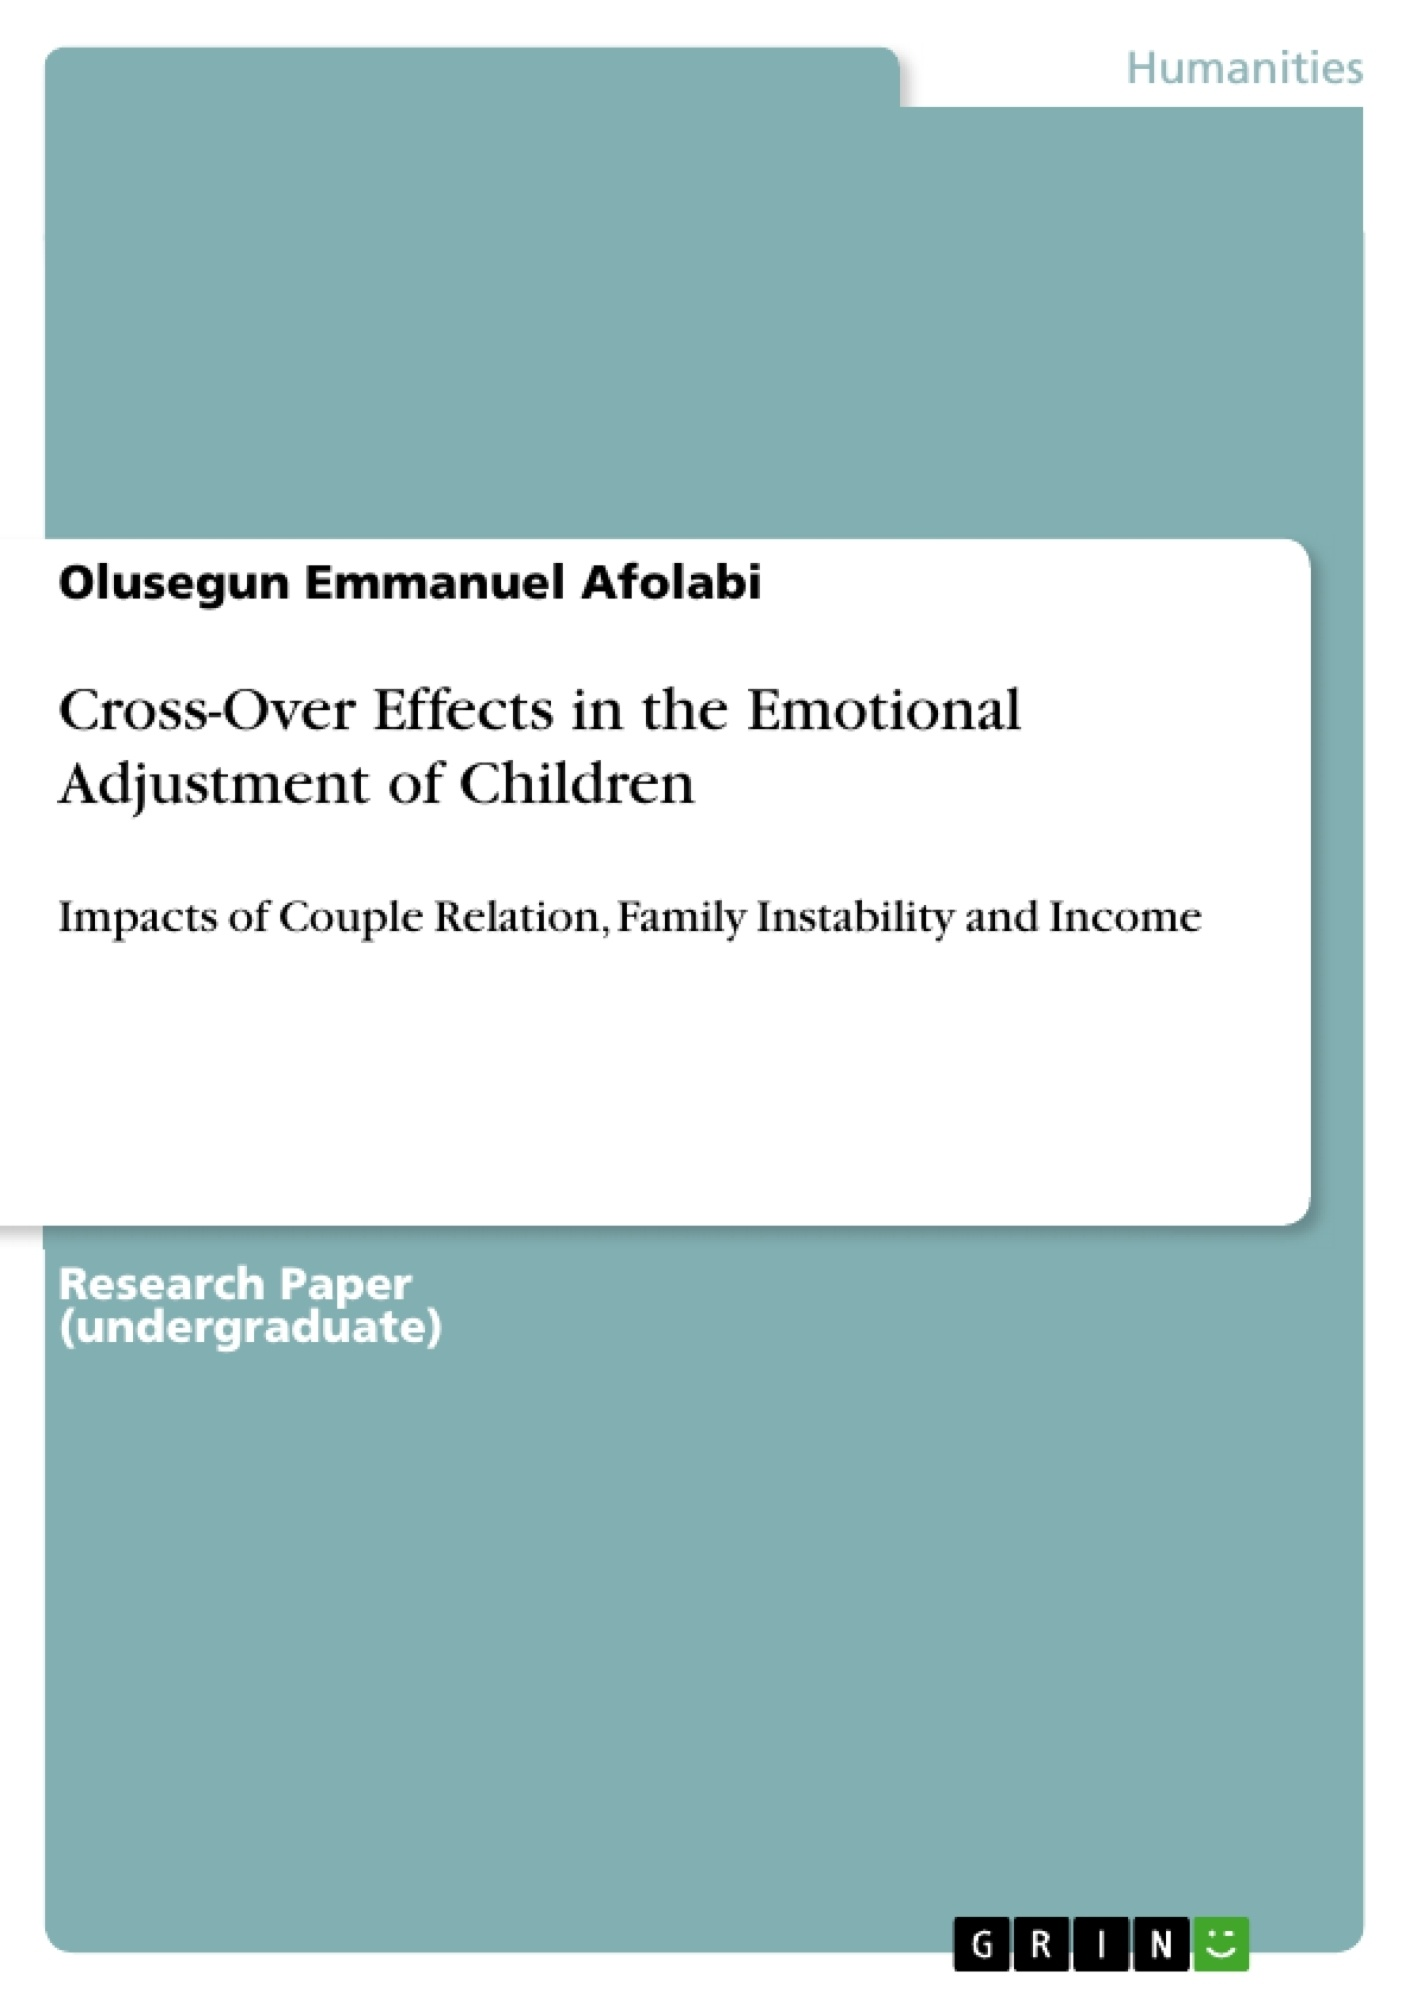 Title: Cross-Over Effects in the Emotional Adjustment of Children